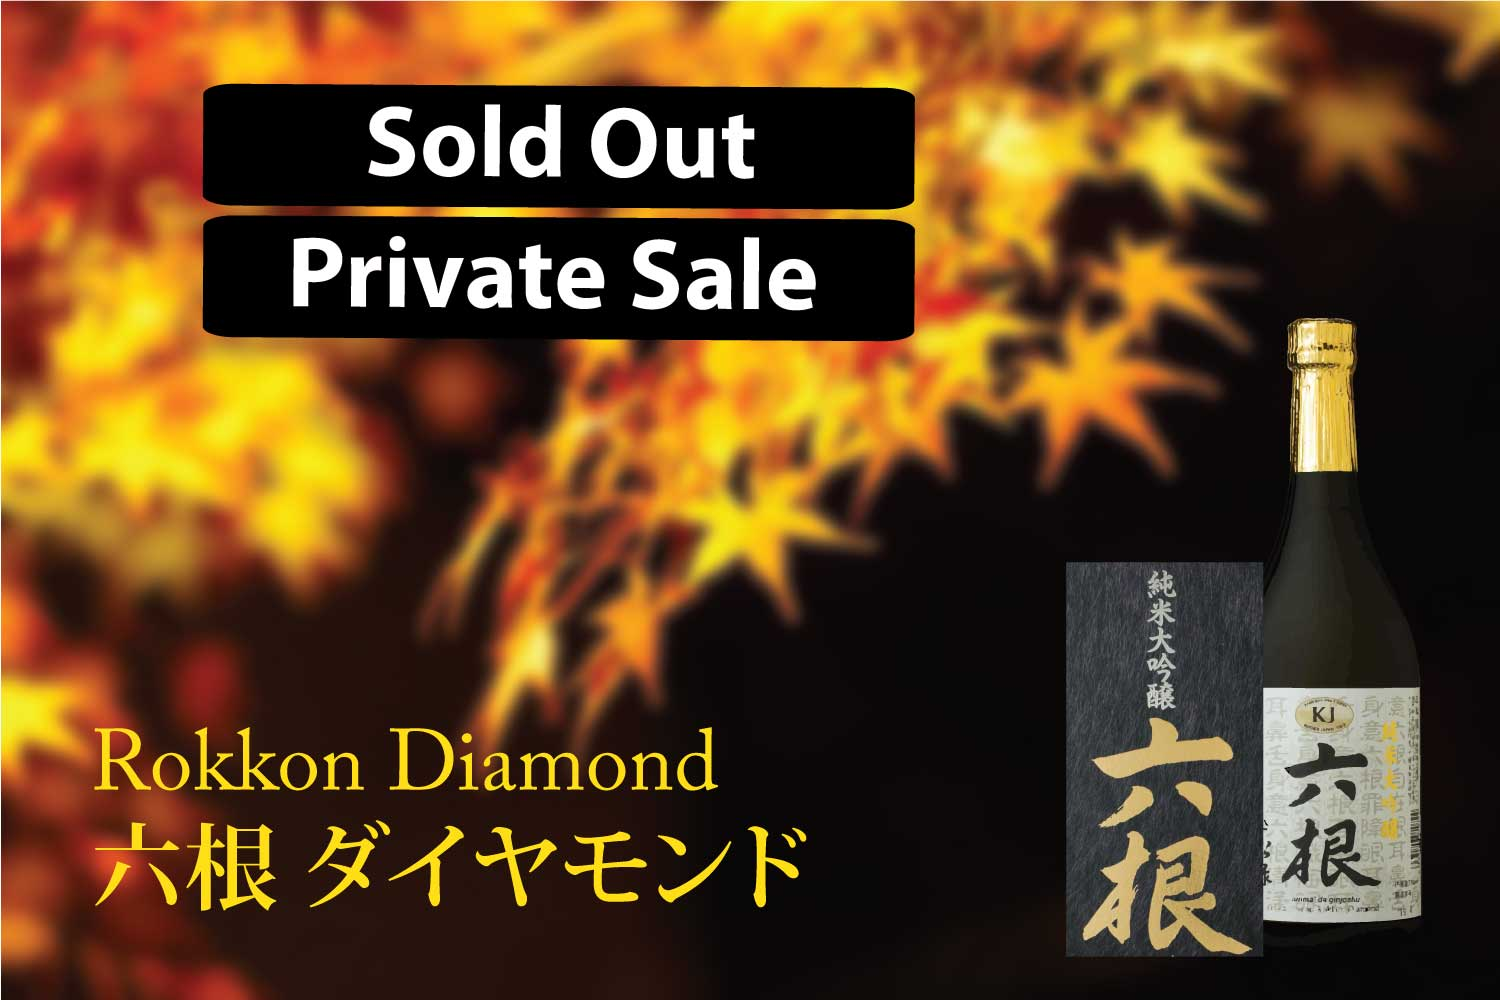 premium-limited-bottle-rokkon-diamond-japanese-sake